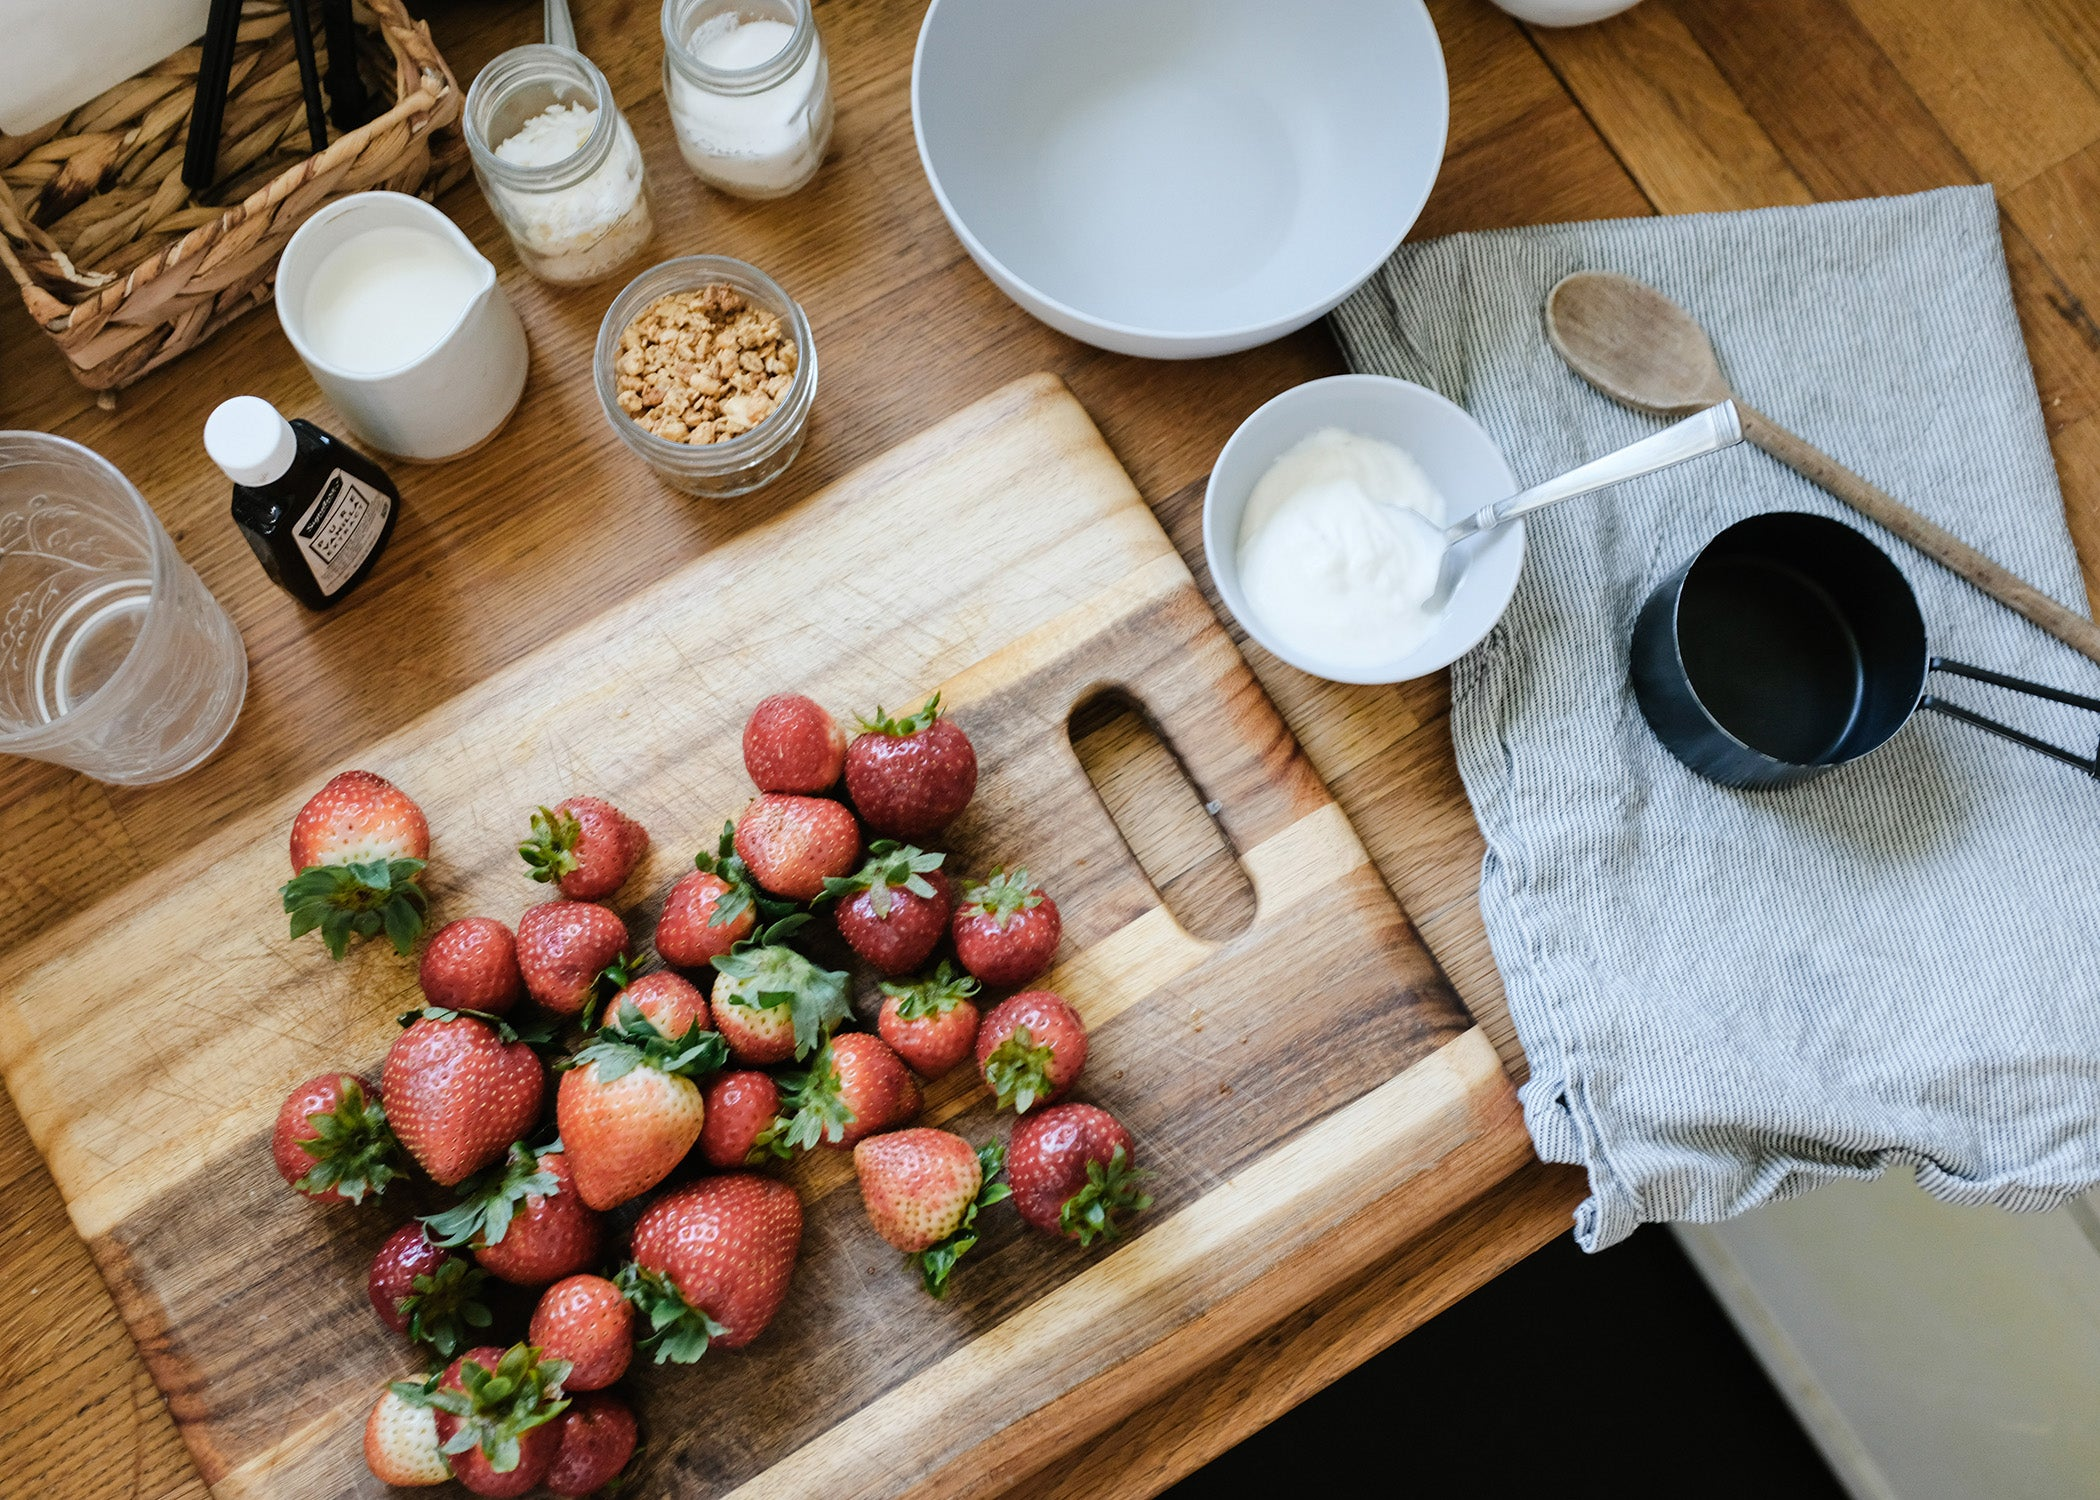 strawberries in a bowl on countertop